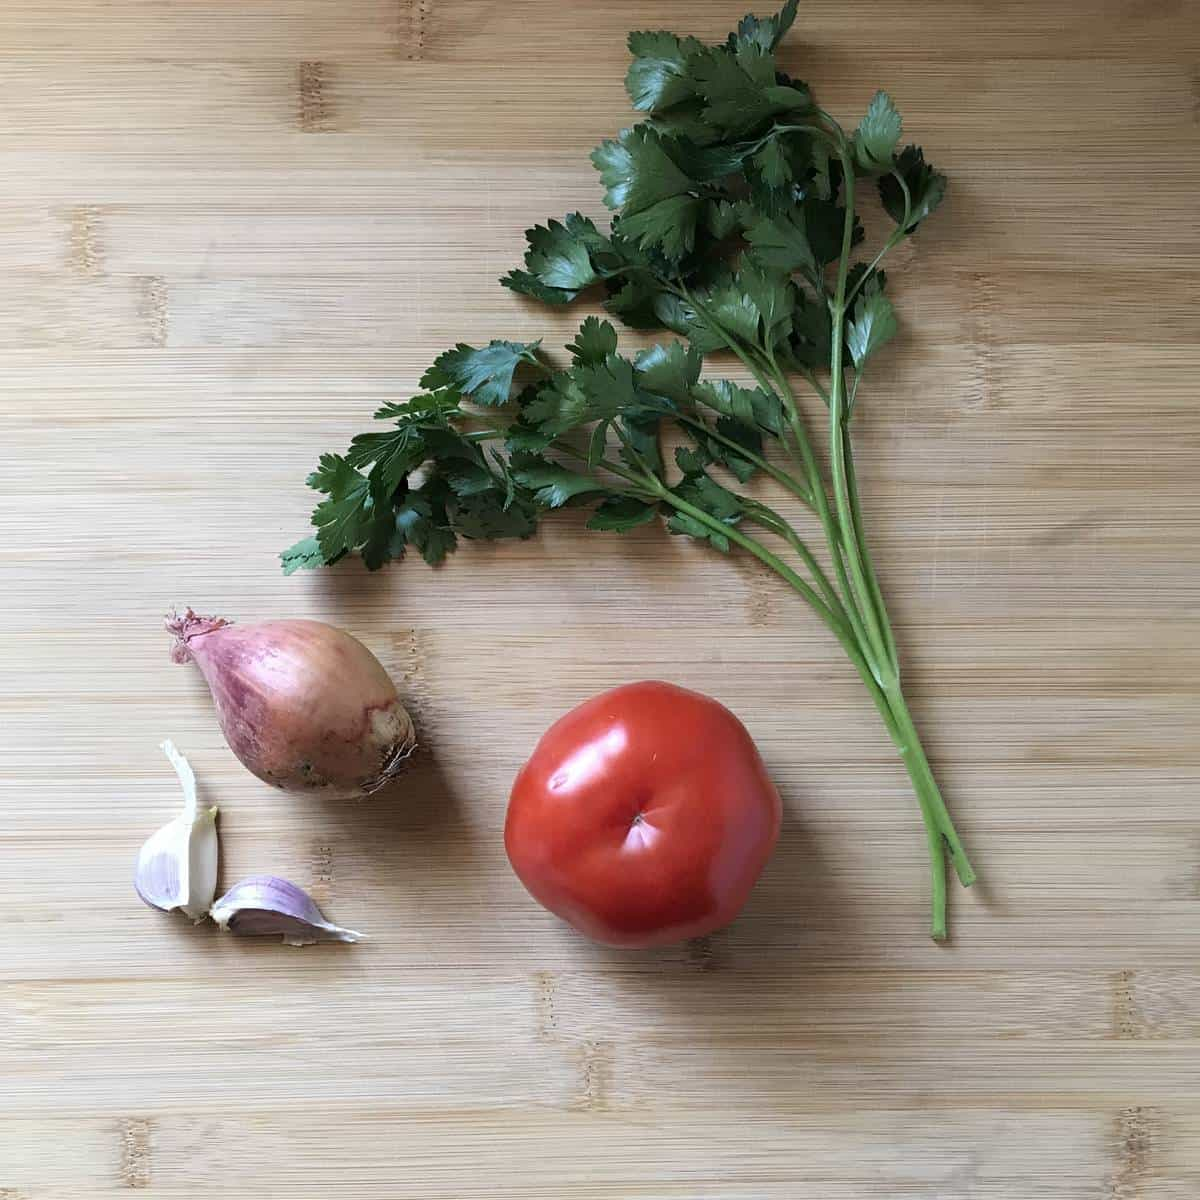 Vegetables on a wooden board.